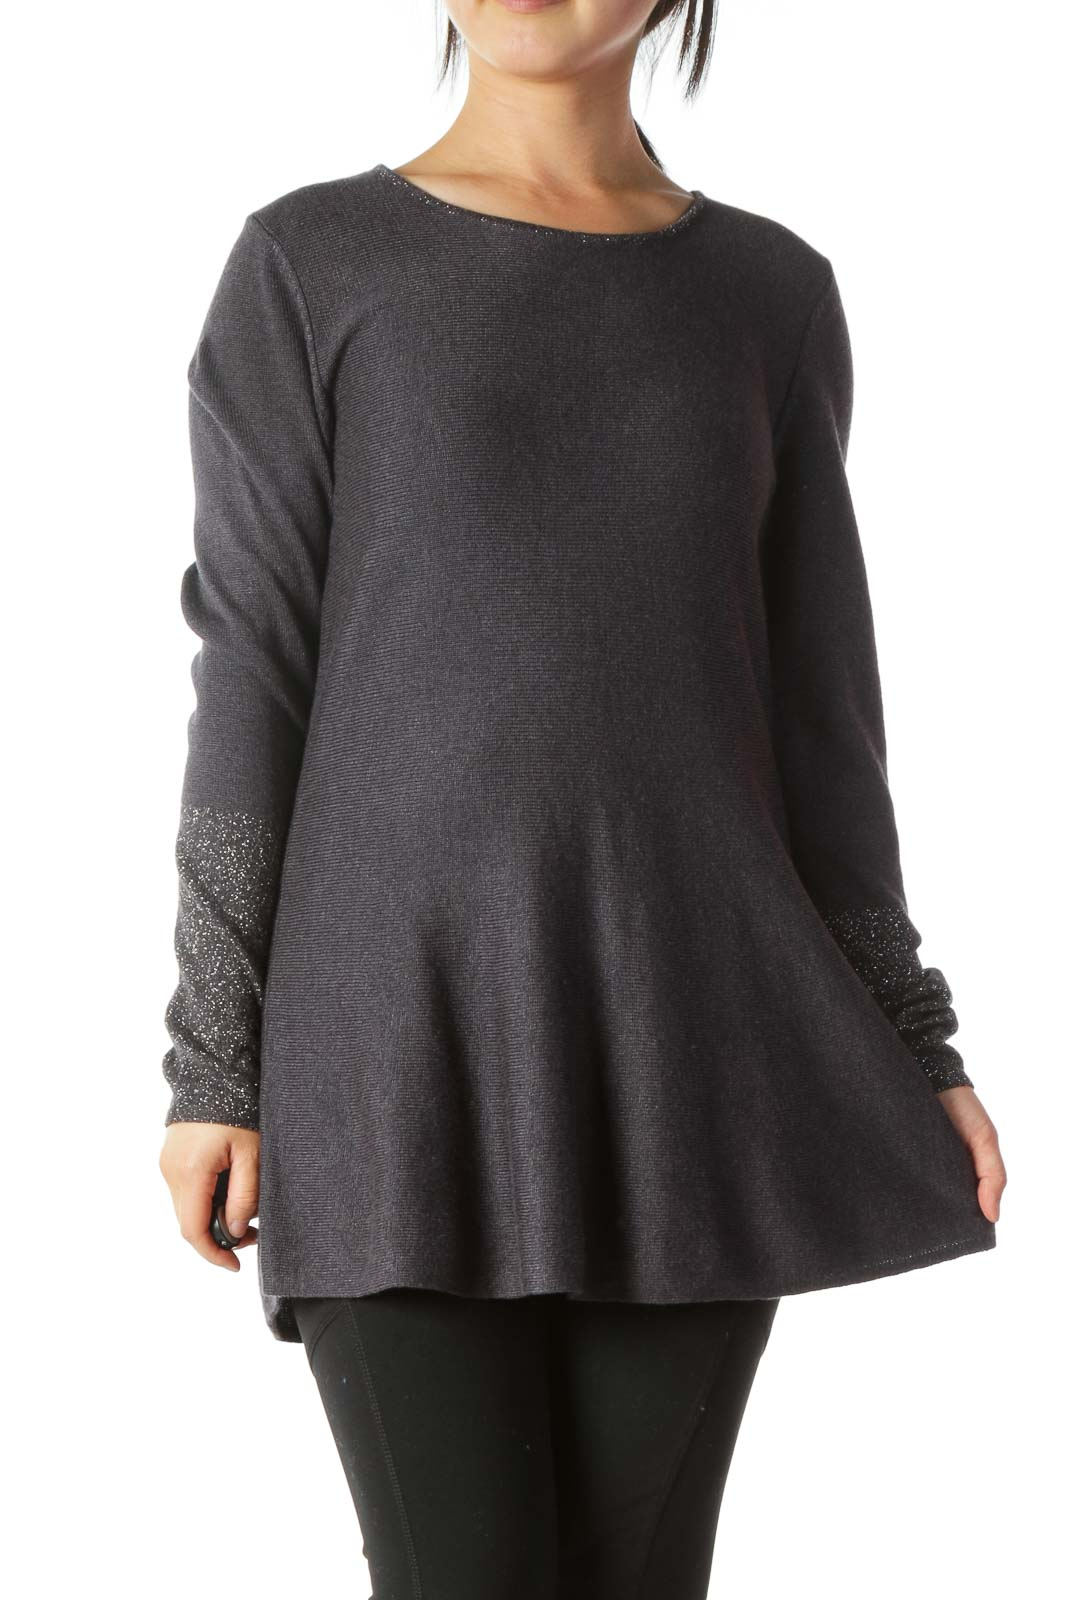 Gray Silver-Threading-Accents A-Line Knit Top